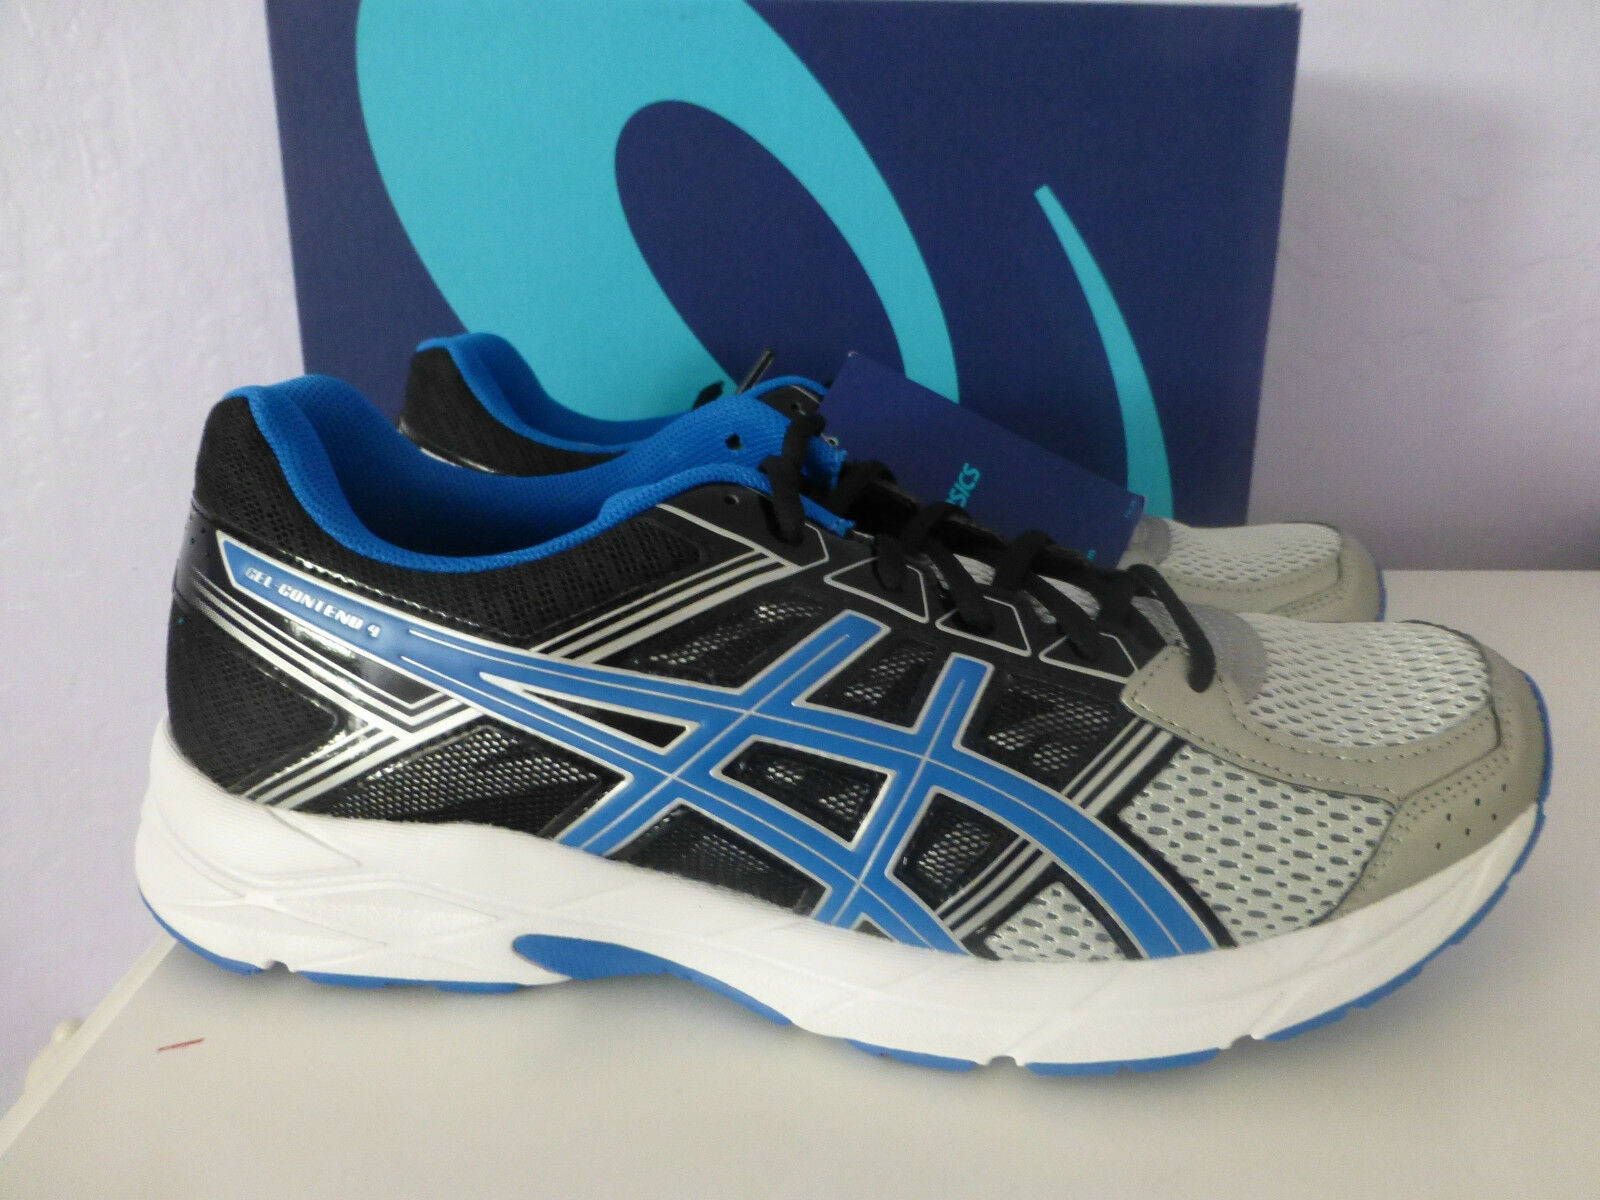 Asics Gel Contend 4 shoes Mens shoes Size 12.5 New In Box